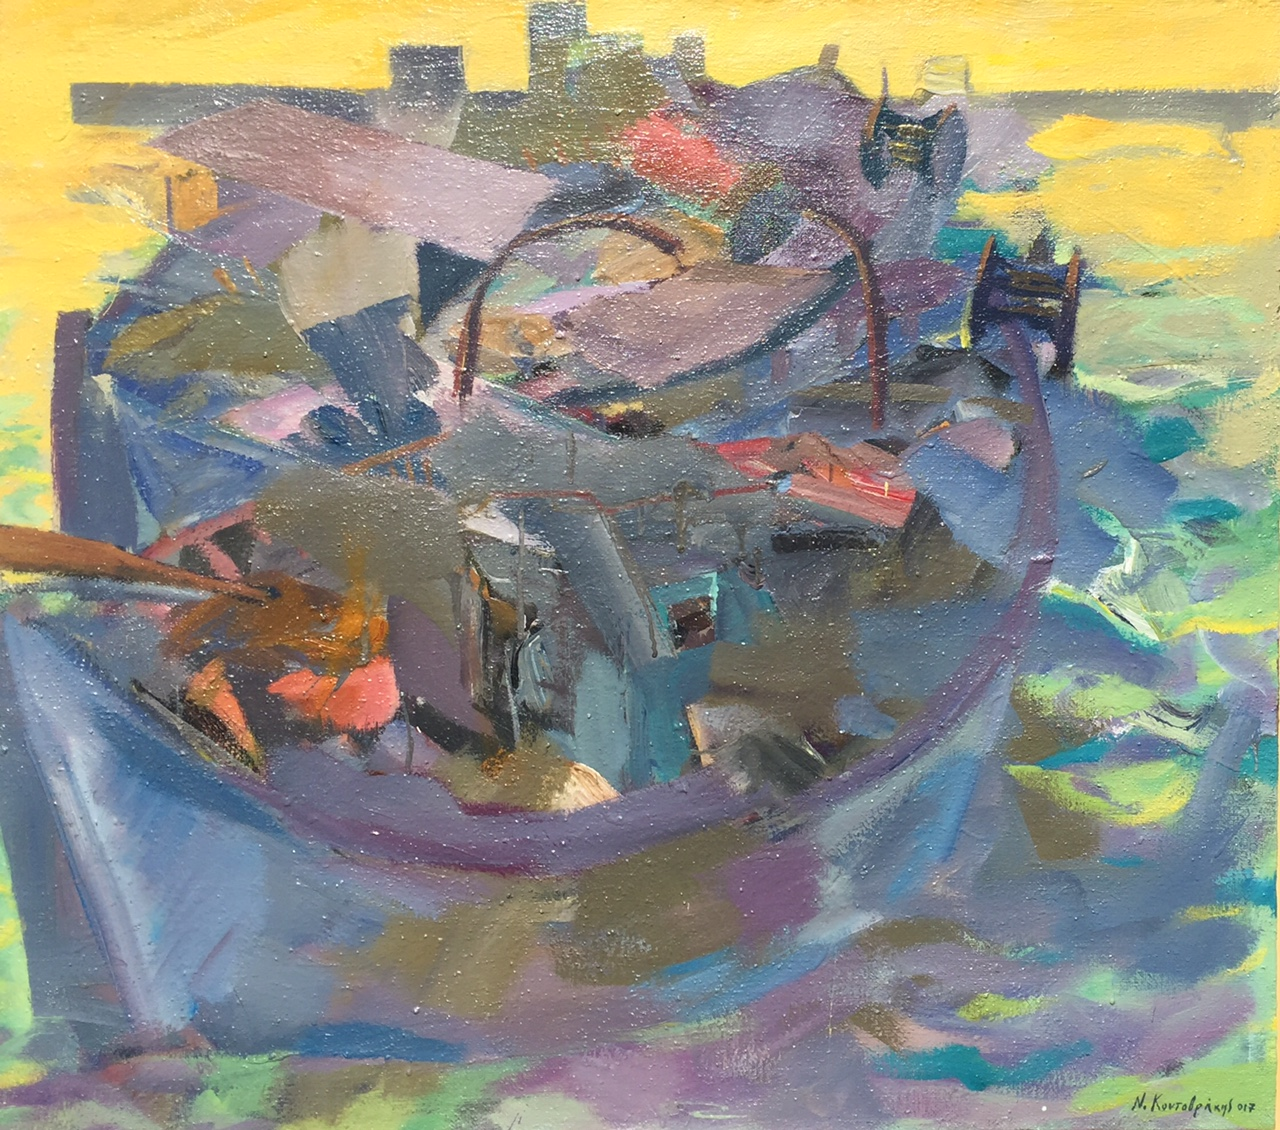 Fishing boats acrylic on canvas 100x90cm